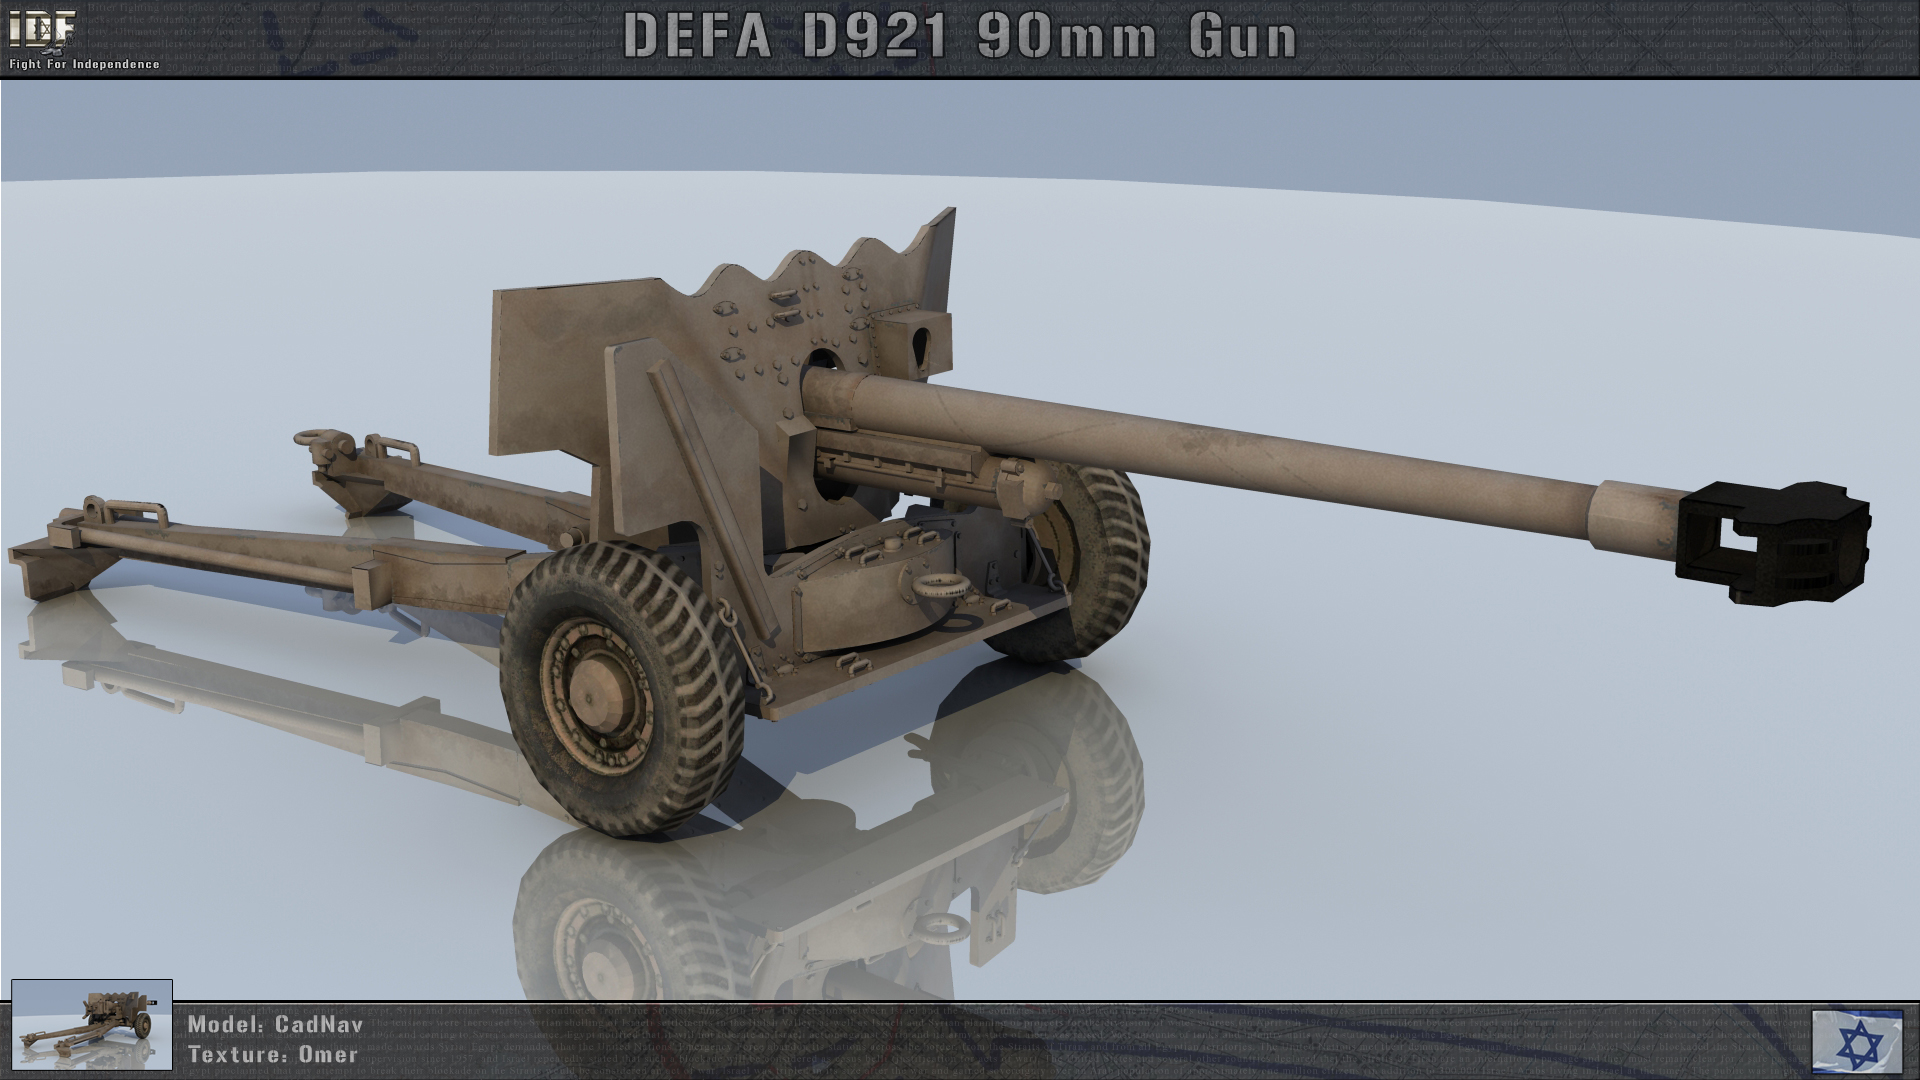 Defa D921 90mm Image Idf Fight For Independence Mod For